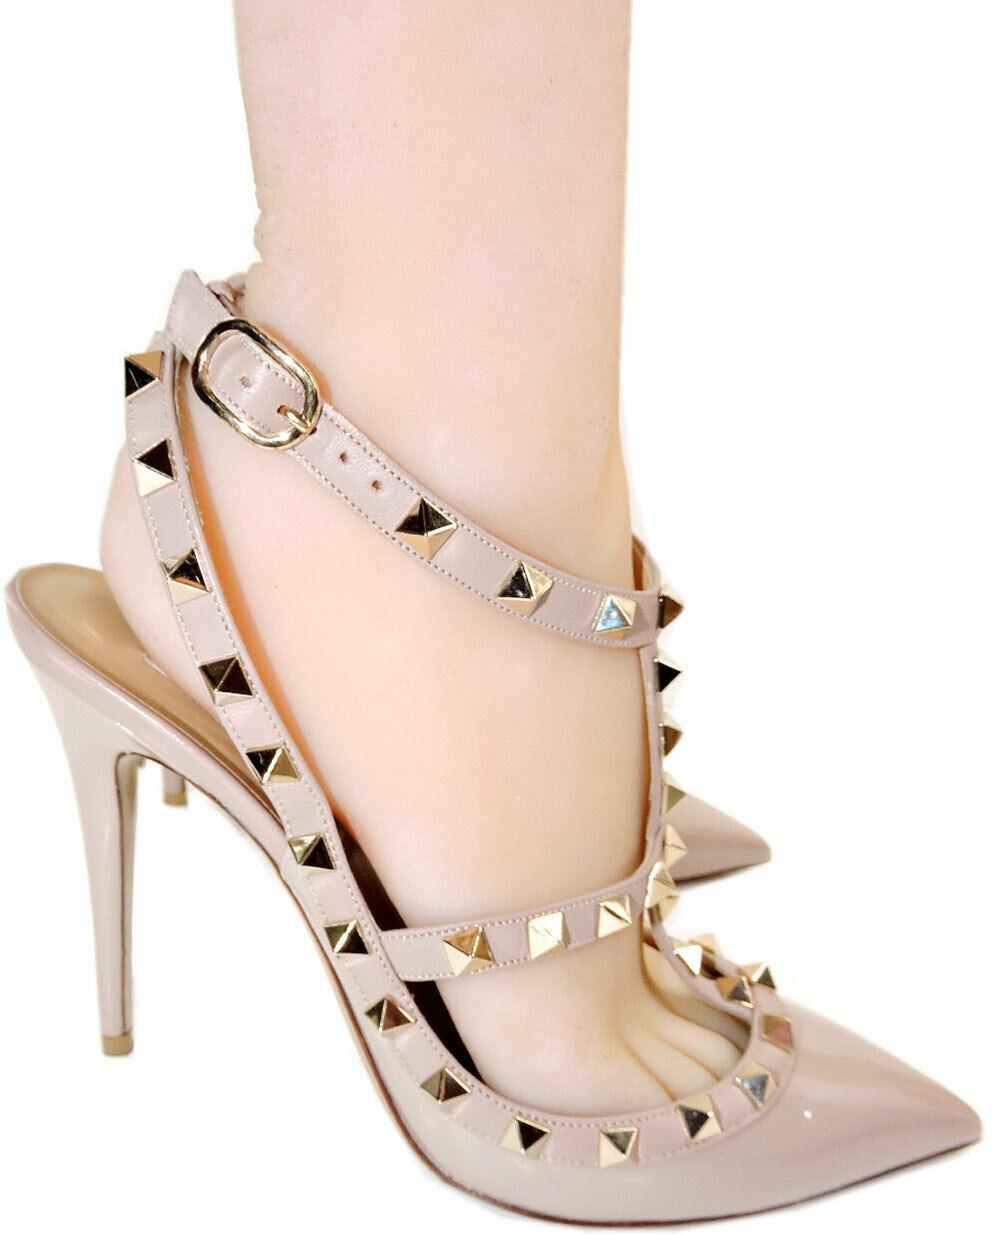 Valentino Rockstud T-Strap Patent Leather Cage Pumps Slingback Heels Shoe 37.5